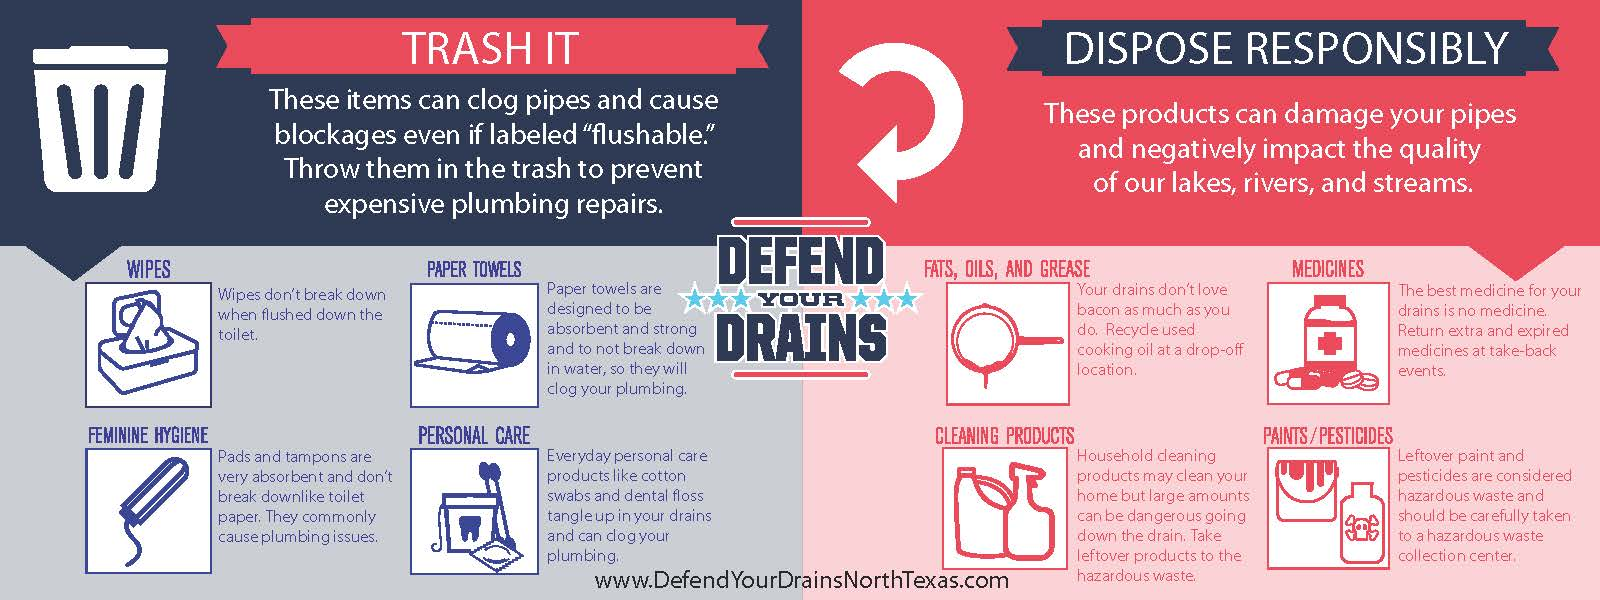 Image of a defend your drain graphic not to flush wipes